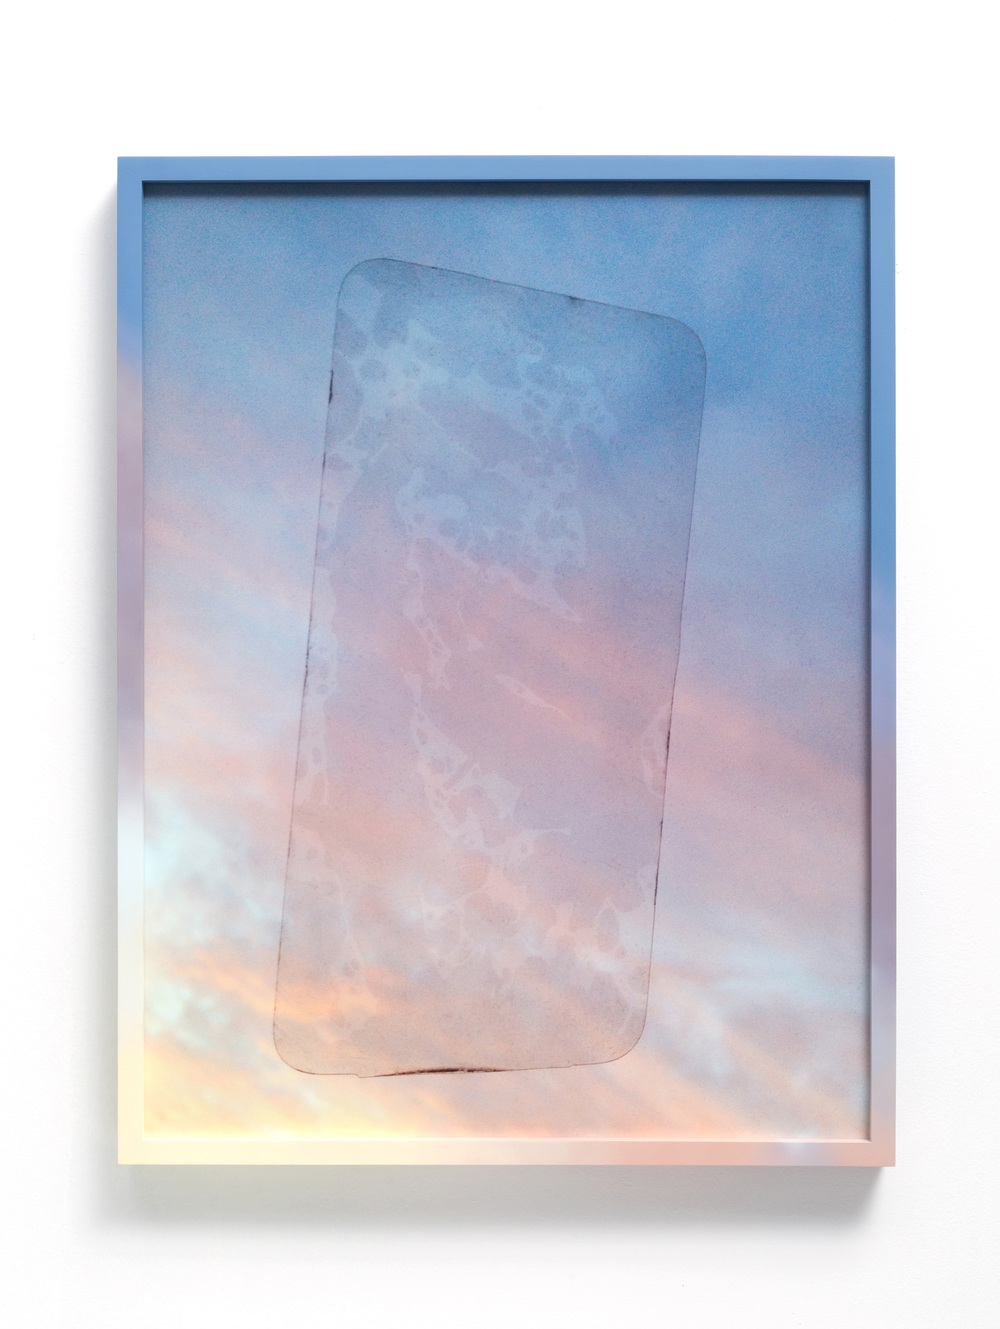 Valerie Green  IMG 7036_2/8/14, 5:37:37 PM , 2014 Film lamination, archival pigment print, sintra, airbrushed acrylic, and wood frame 23 1/2 x 30 1/2 x 2 in (60 x 78 x 5 cm)